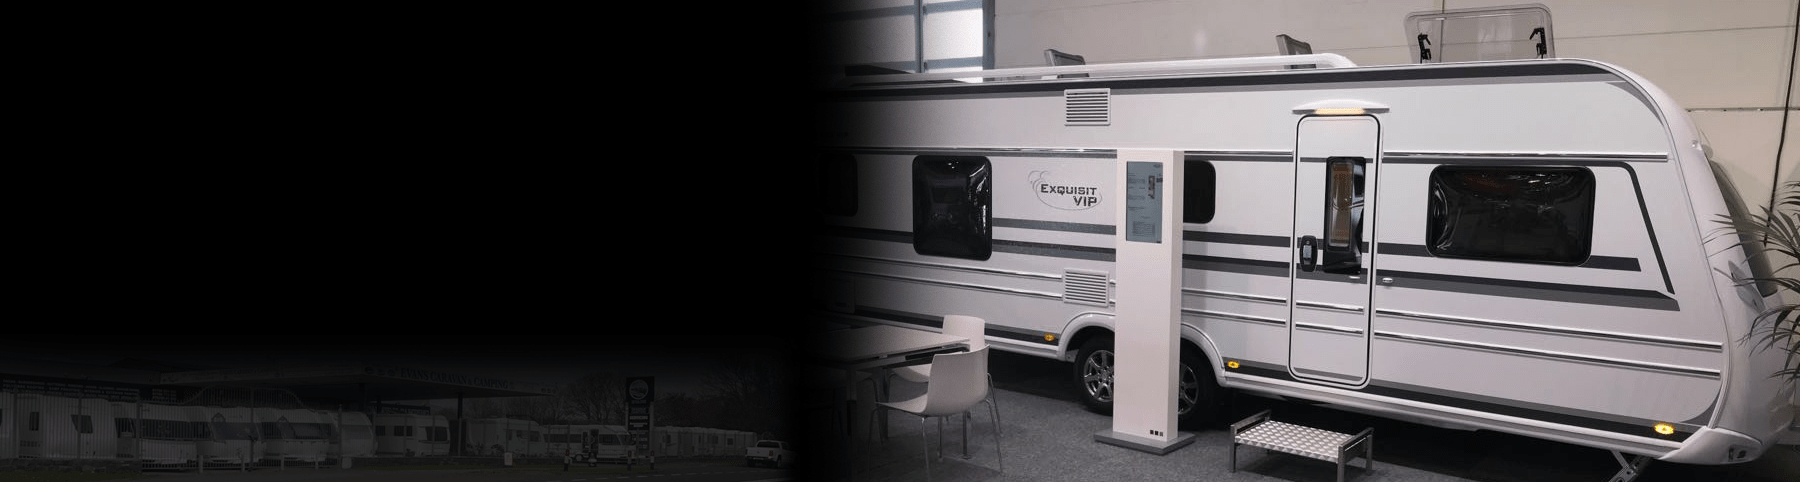 New and used Hobby and LMC caravan dealer as well as motorhome sales